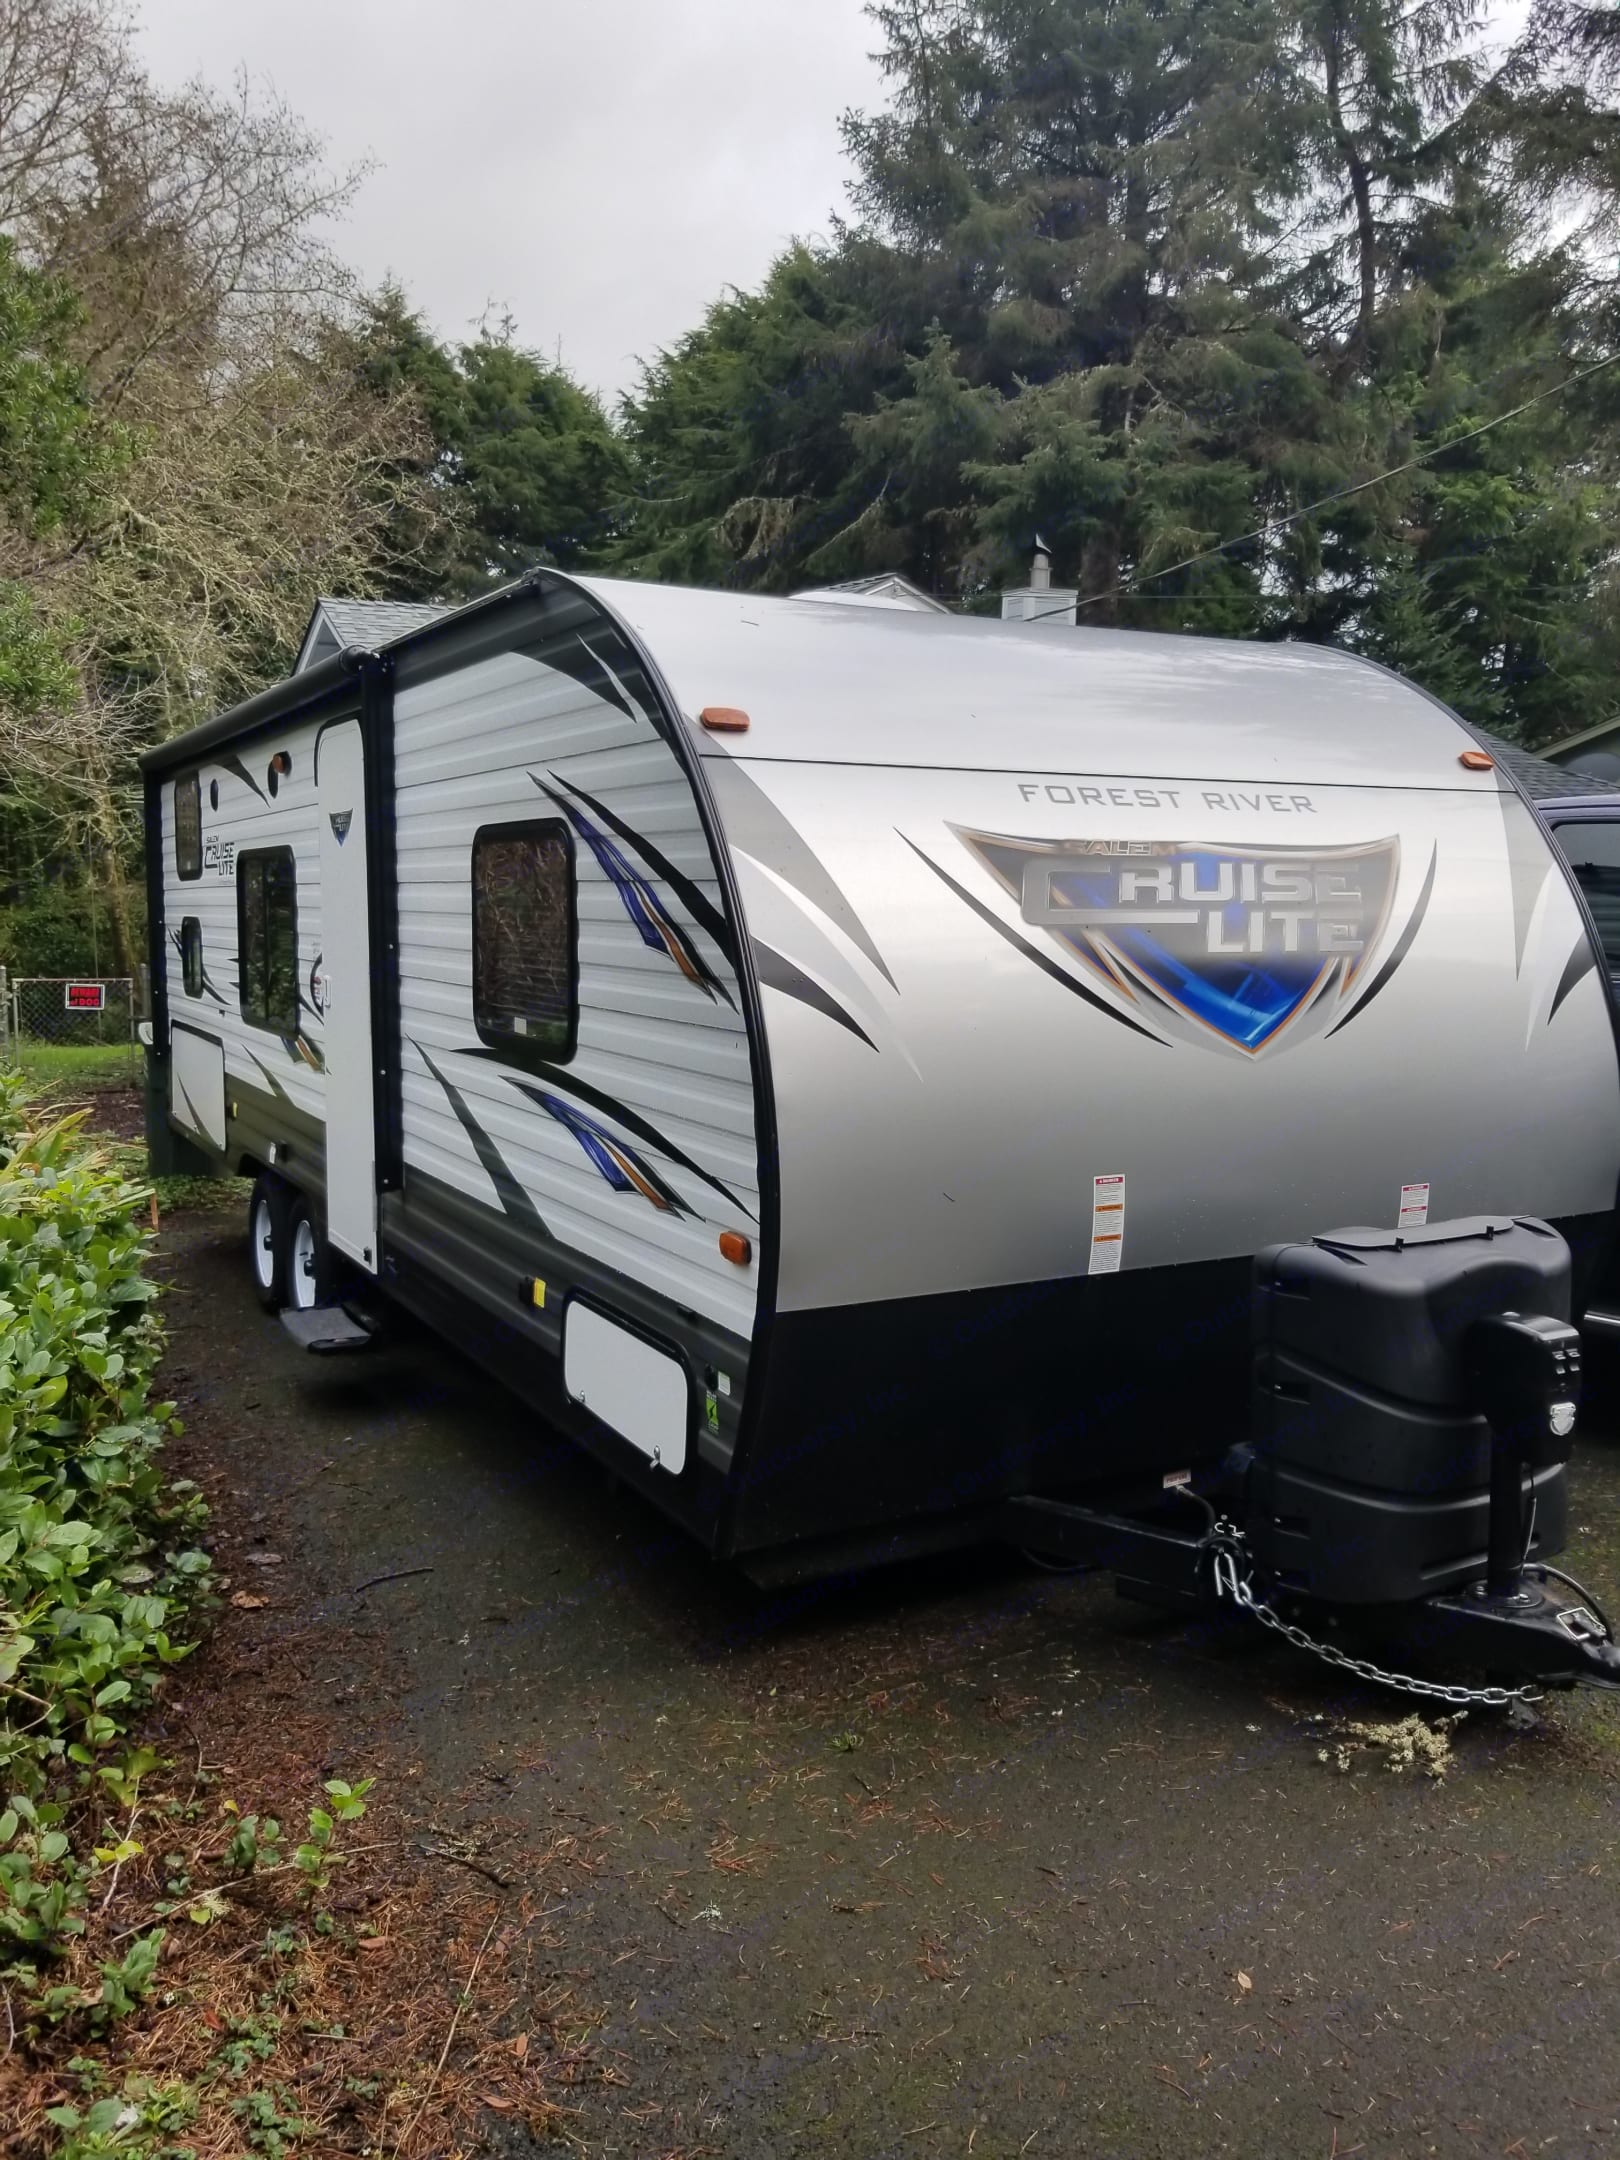 Salem Cruise Lite 261BHXL! All power! Power jacks, power awning with outdoor speakers and LED party light! . Forest River Salem Cruise Lite 2017